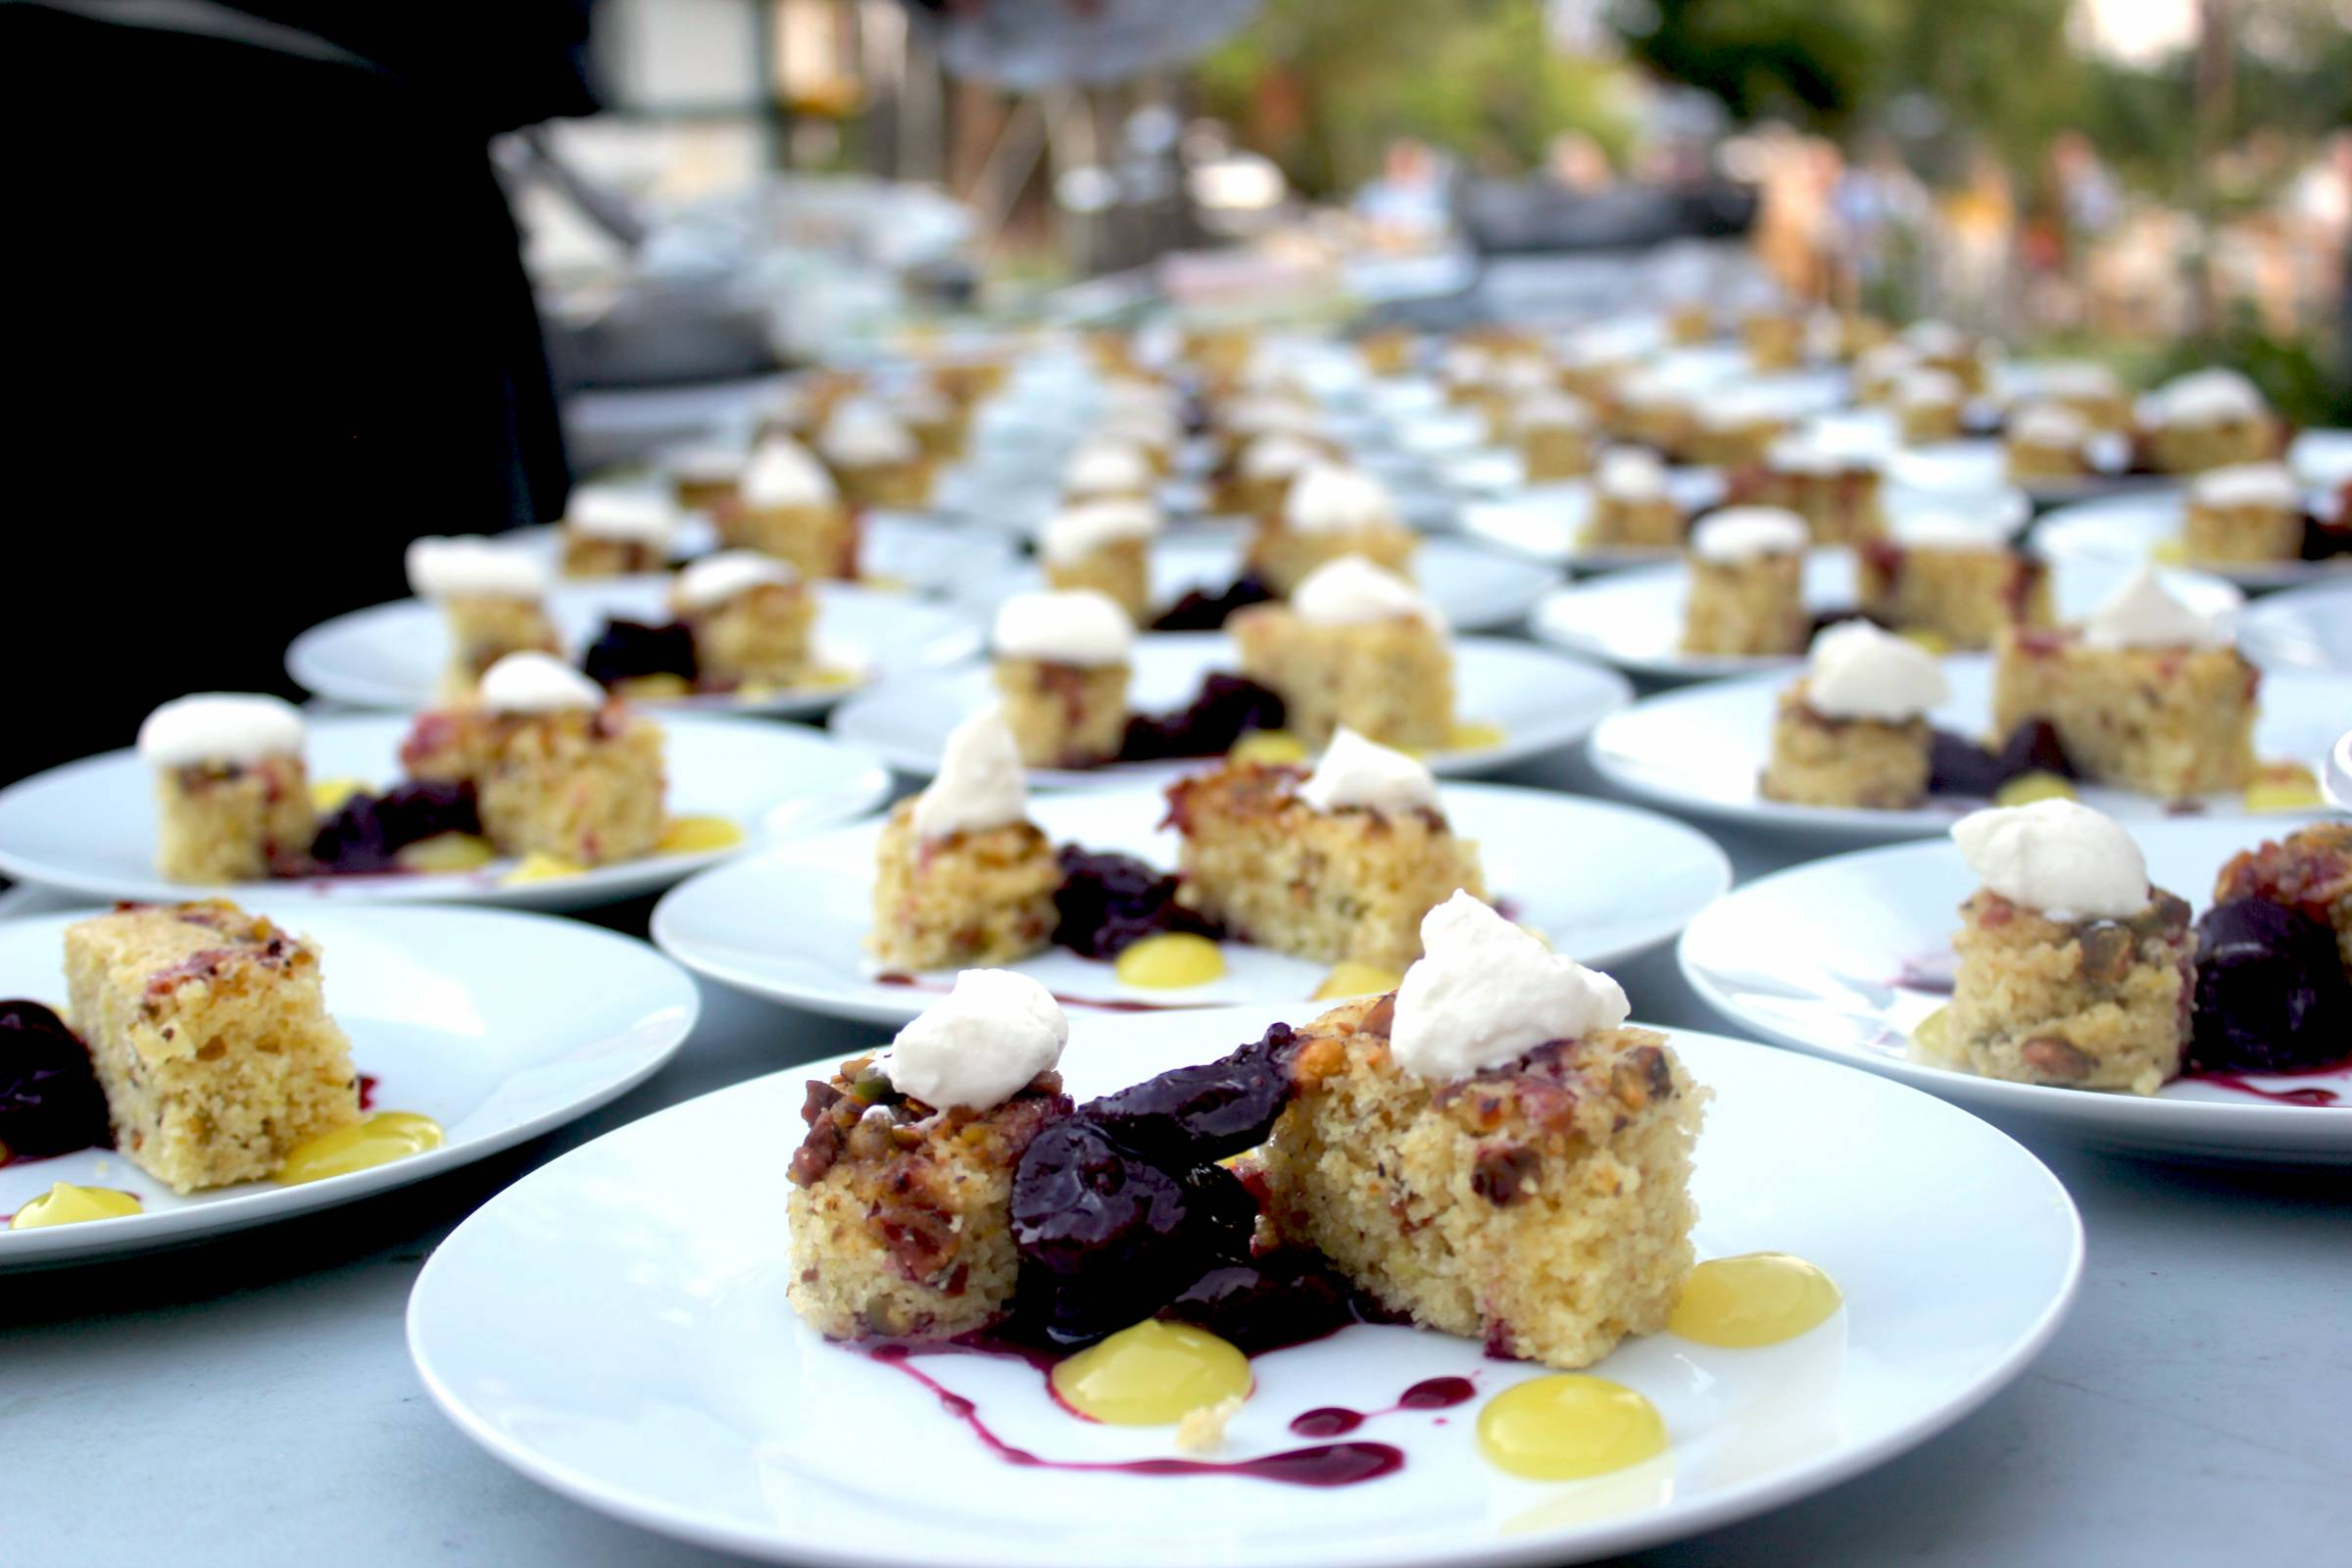 first course | wedding reception food inspiration made by GB Culinary